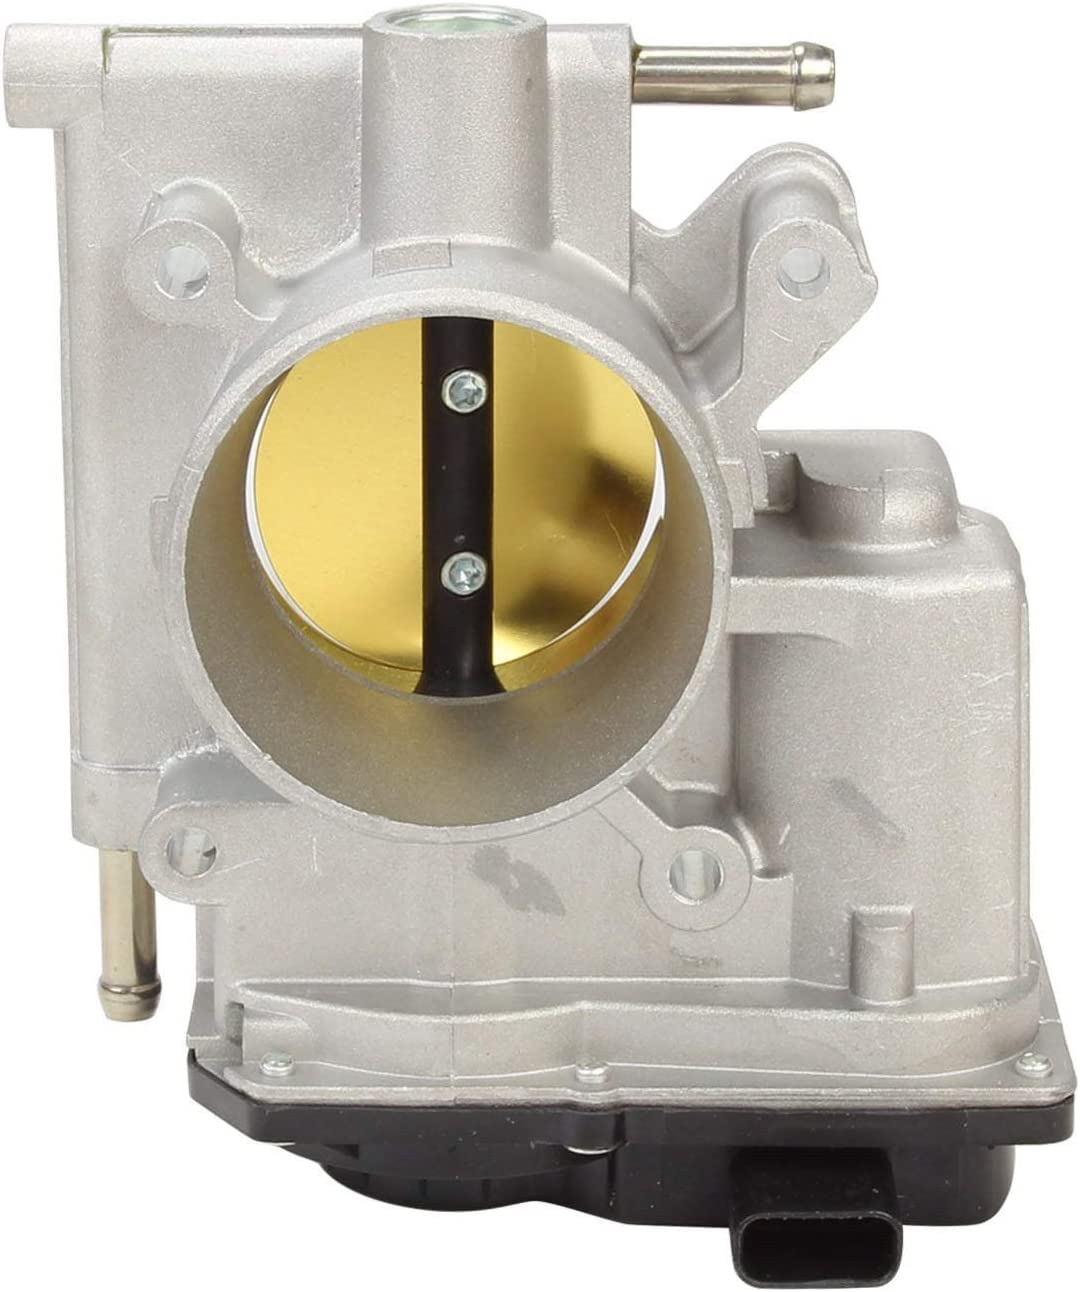 NEW ZENITHIKE Throttle Body fit for 2006 2007 2008 2009 Ford Fusion,2006 2007 2008 2009 Mercury Milan with 671001